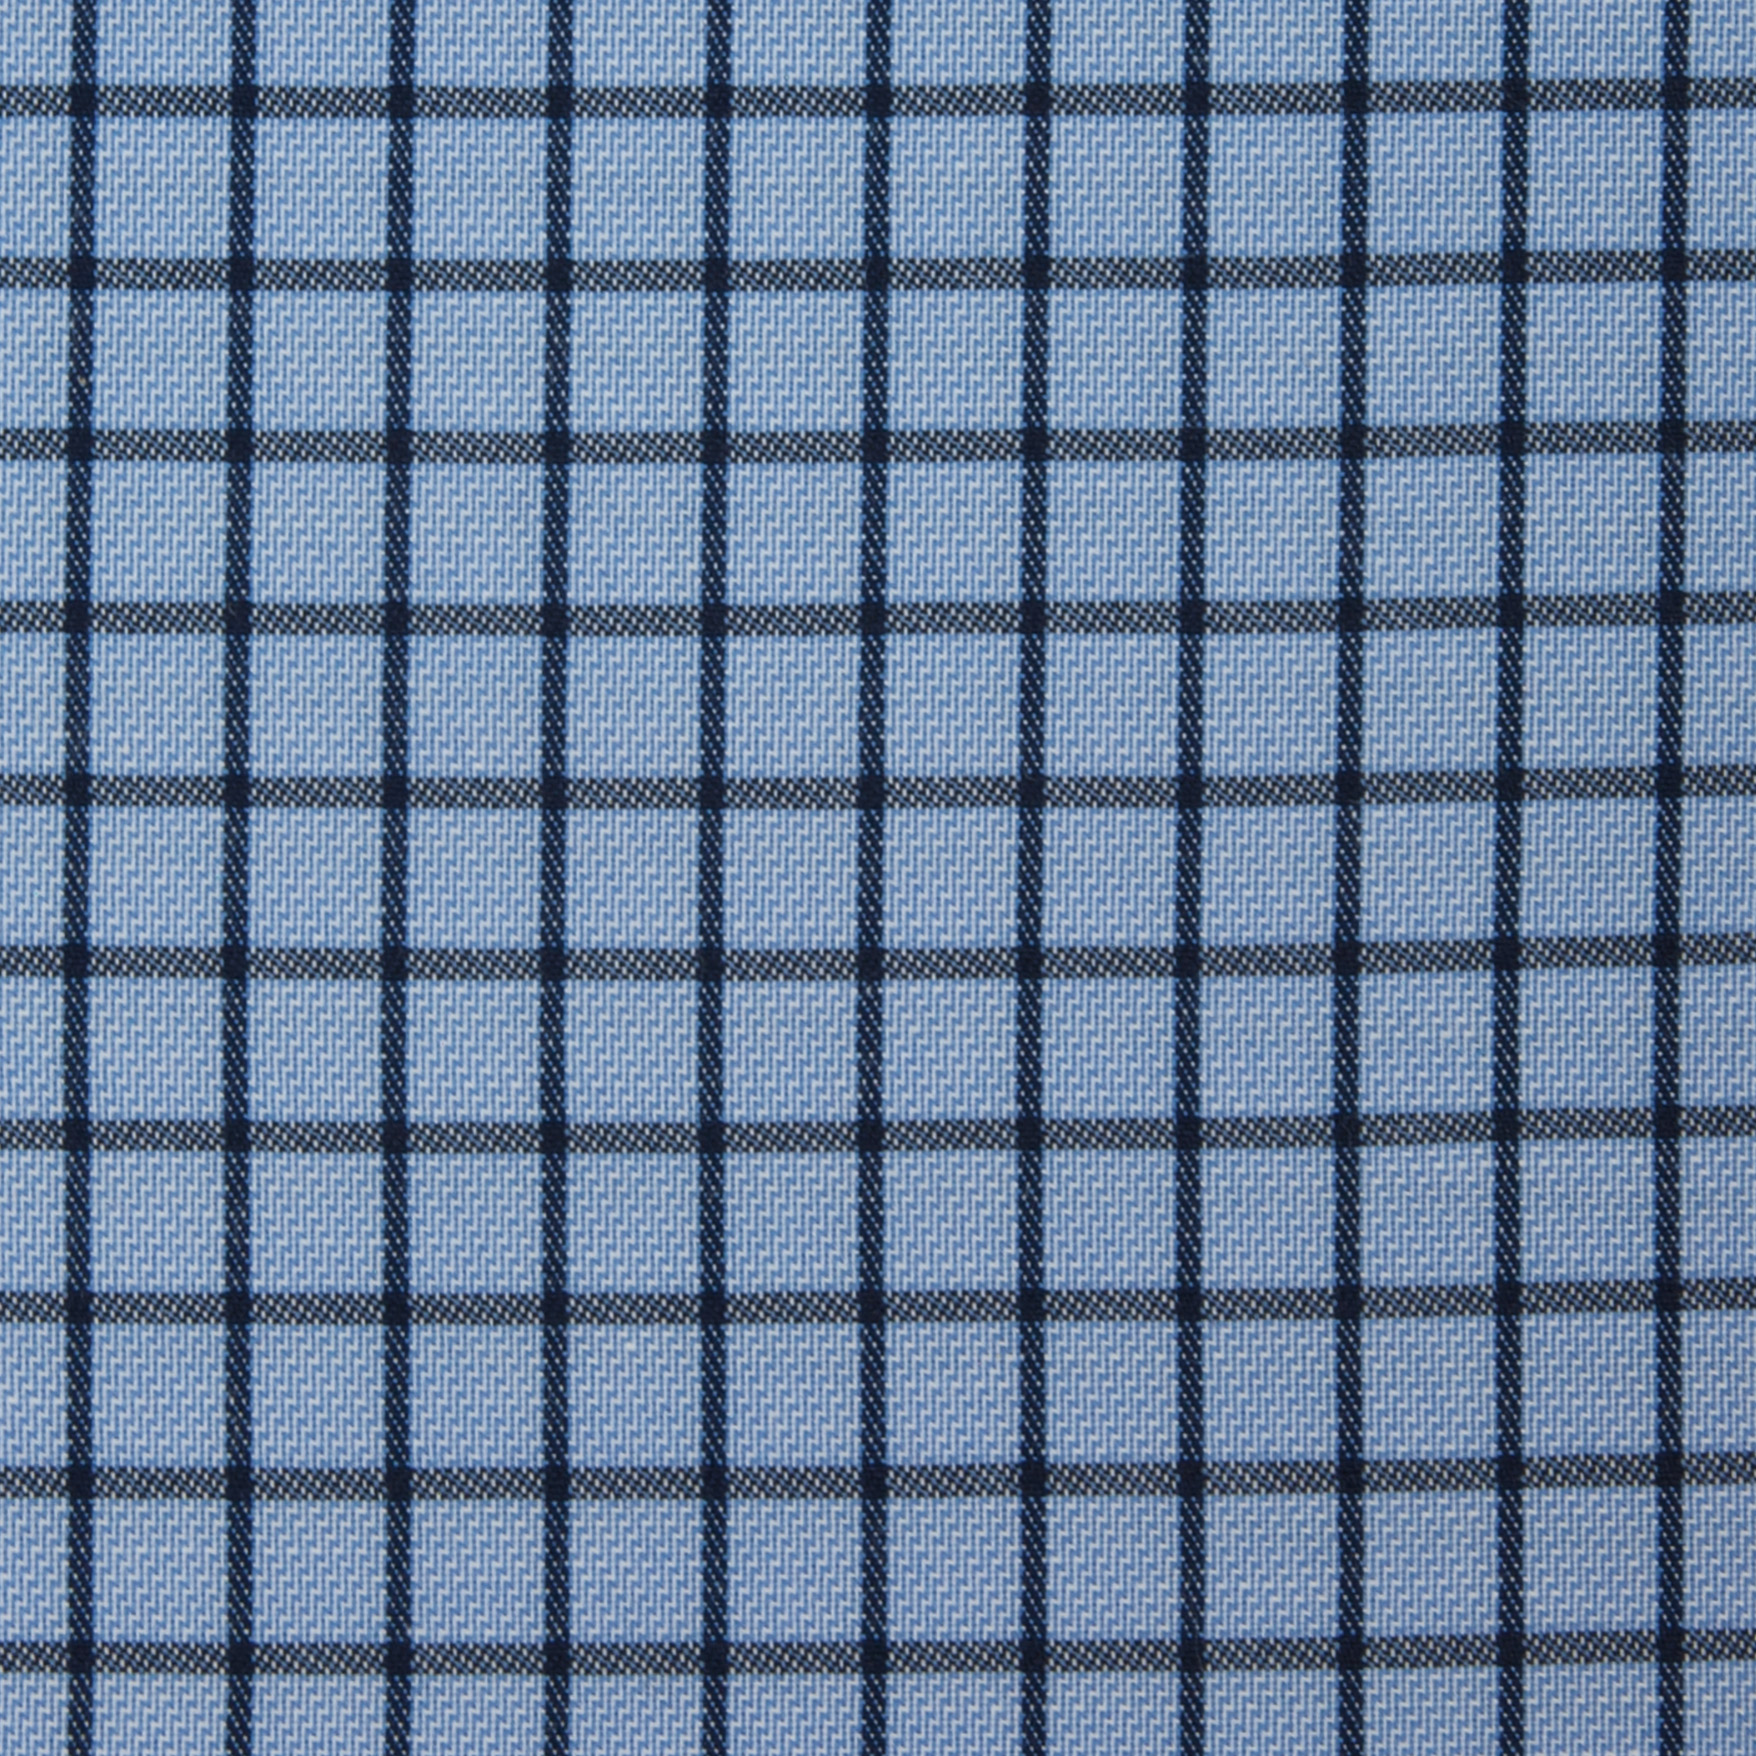 Buy tailor made shirts online - Arturo Collection - Navy Check on Blue